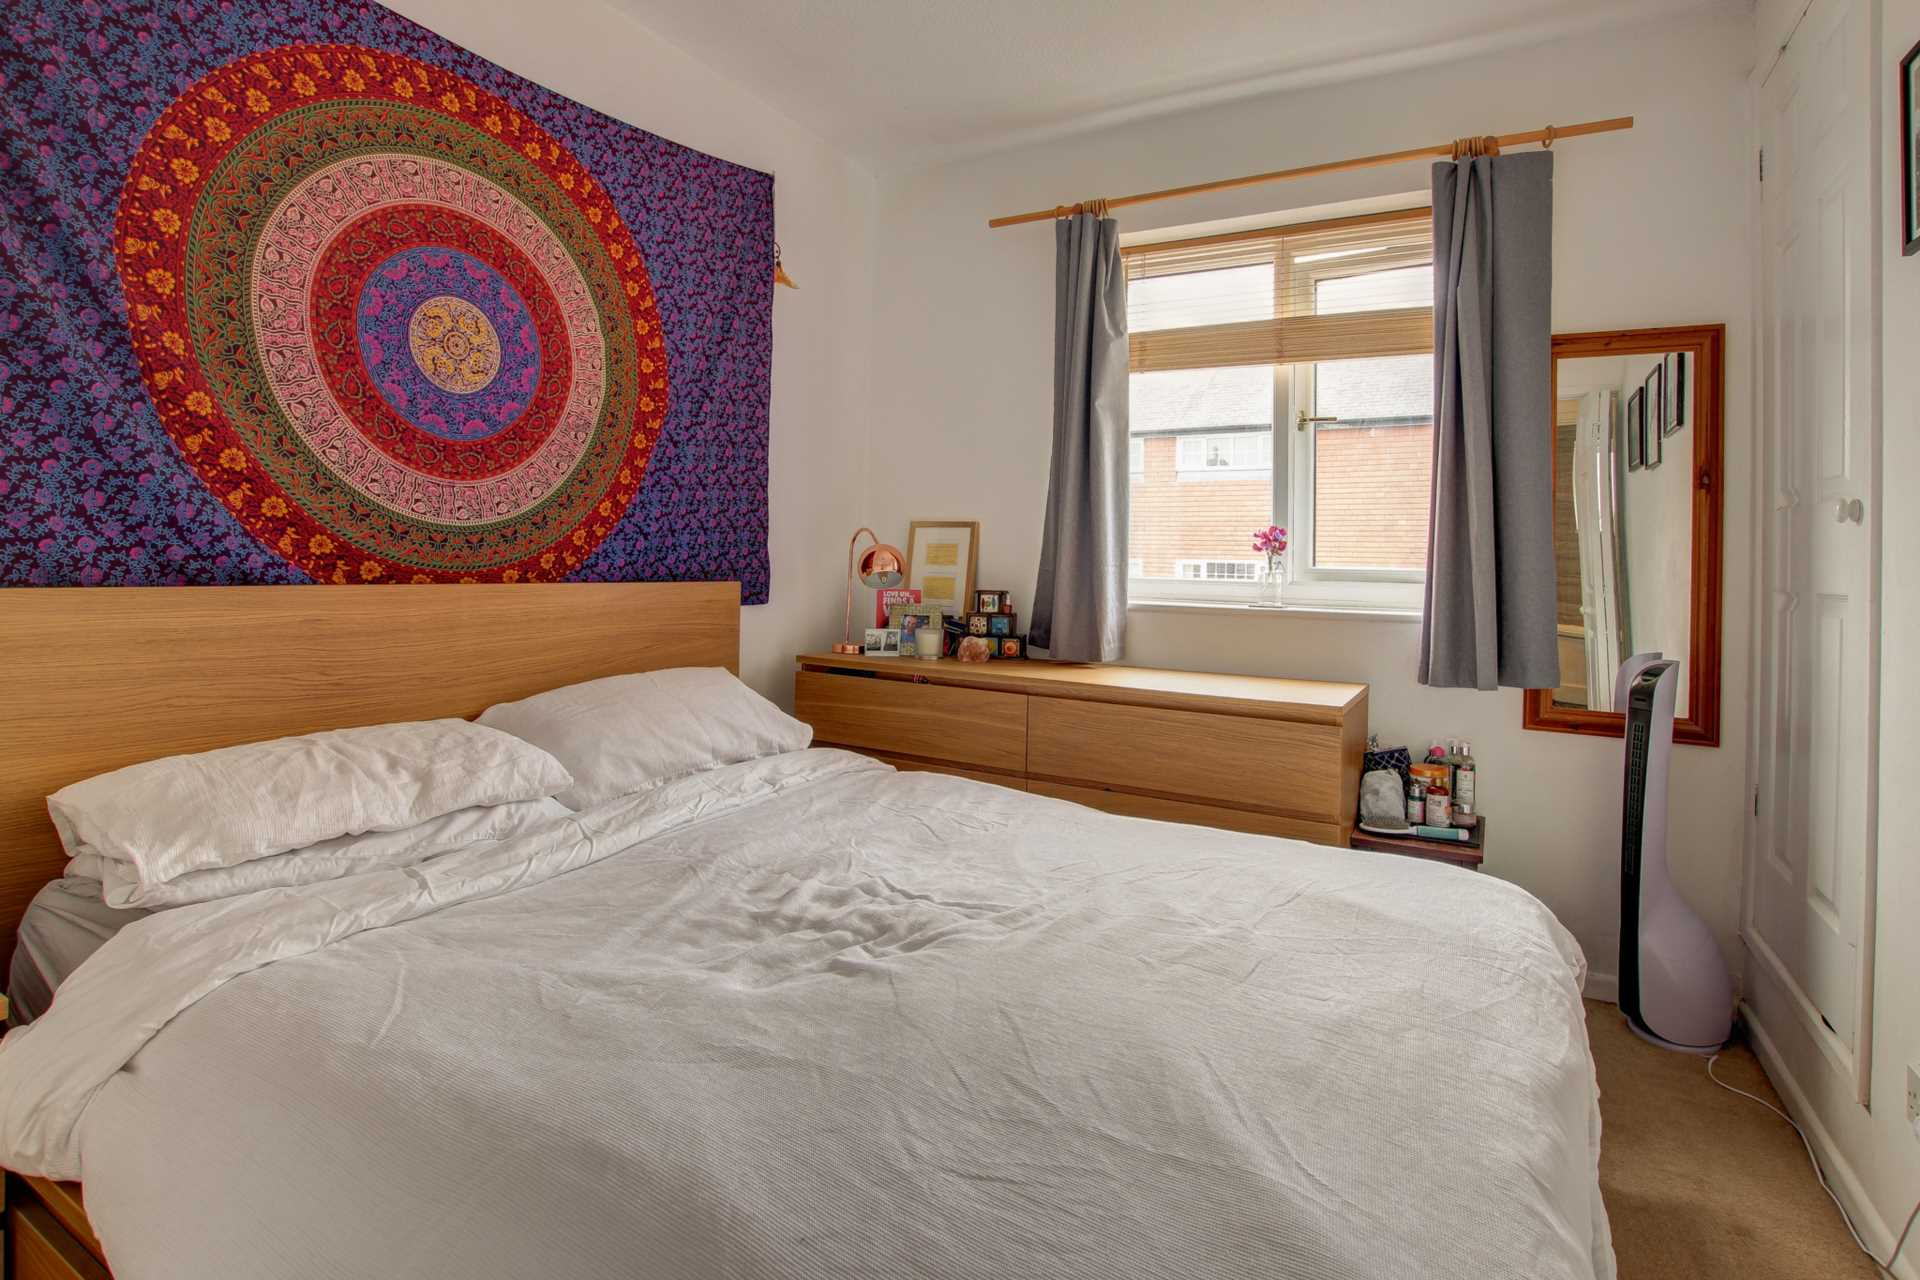 2 bed end of terrace house for sale in The Mews, Shorts Lane, Blandford Forum, Blandford Forum  - Property Image 5